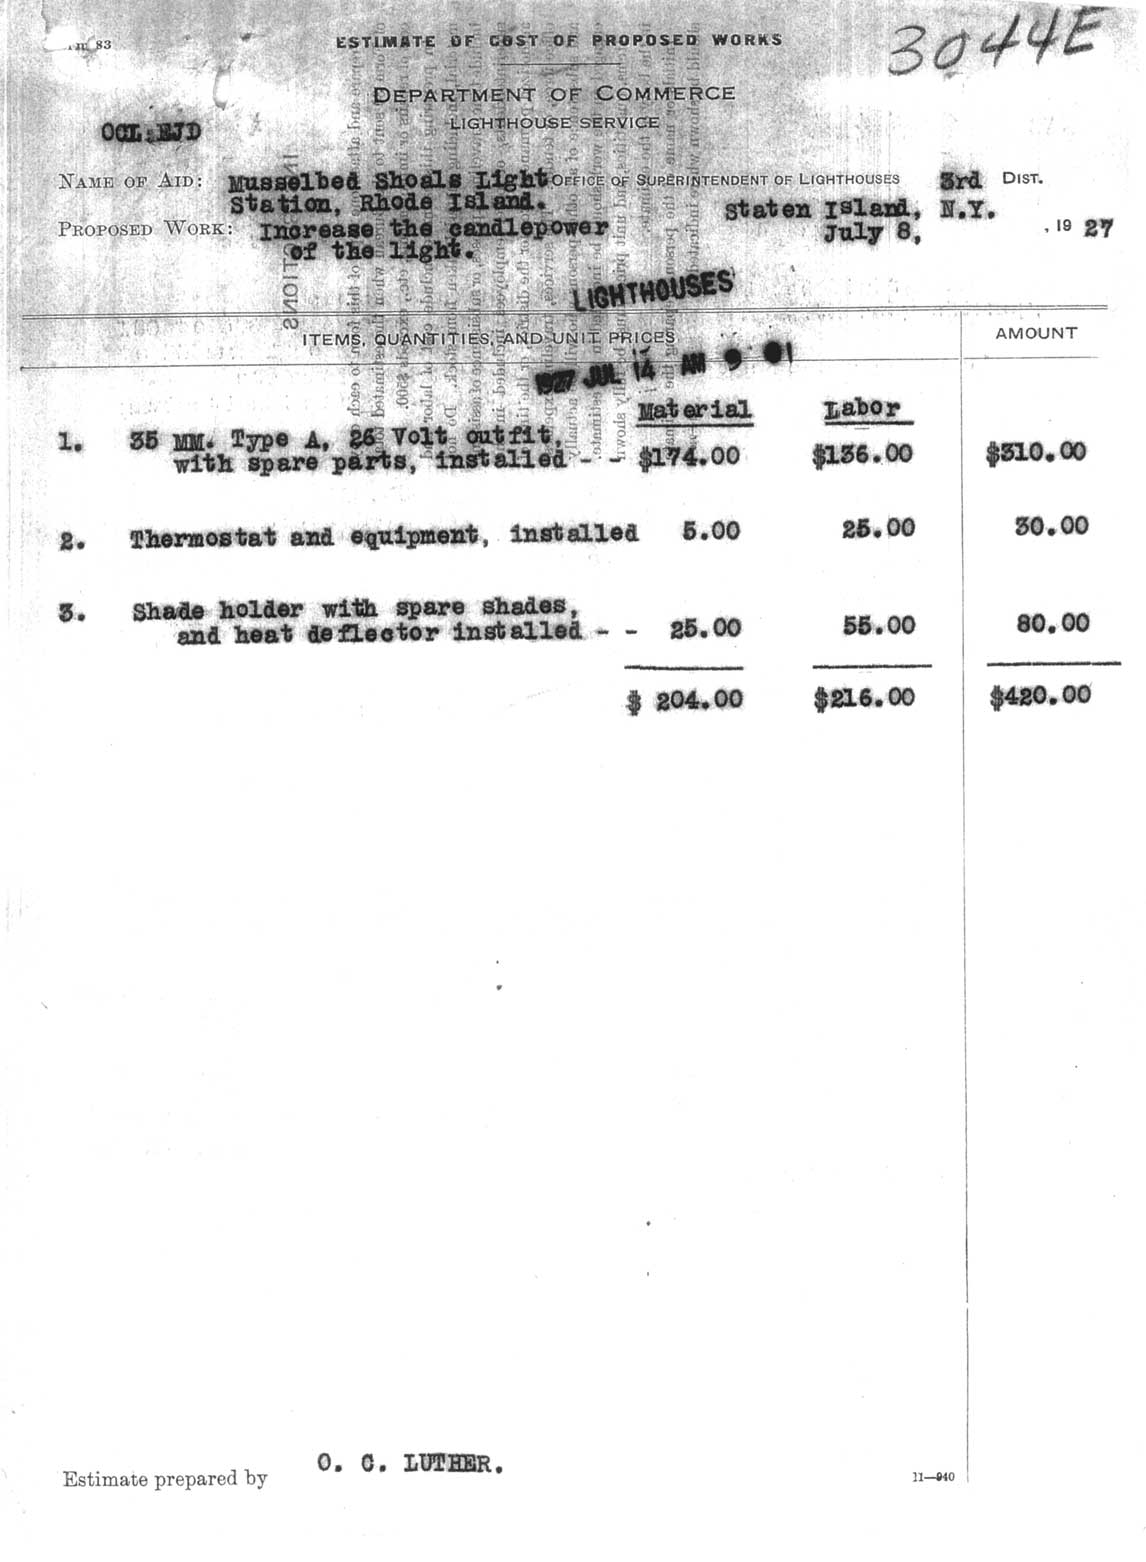 Estimate Of Cost Of Proposed Works at Musselbed Shoals Light